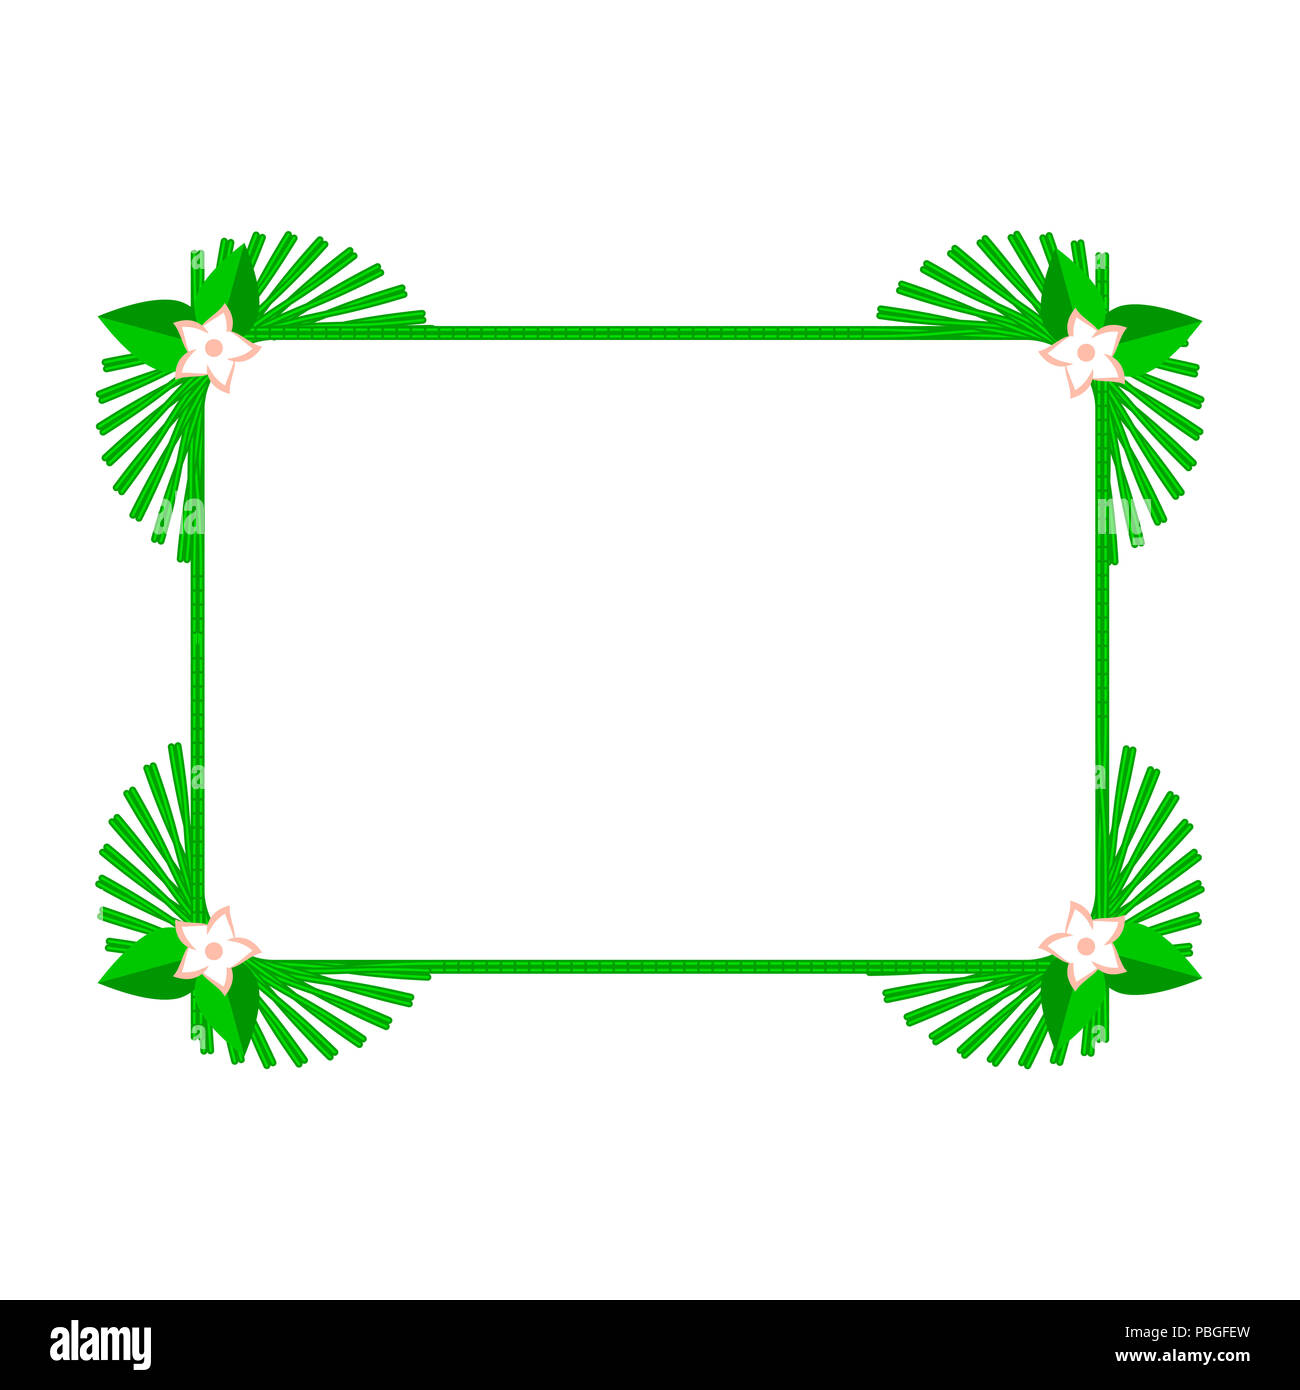 Green Square Summer Frame or Border. Design Elements Set for Web ...